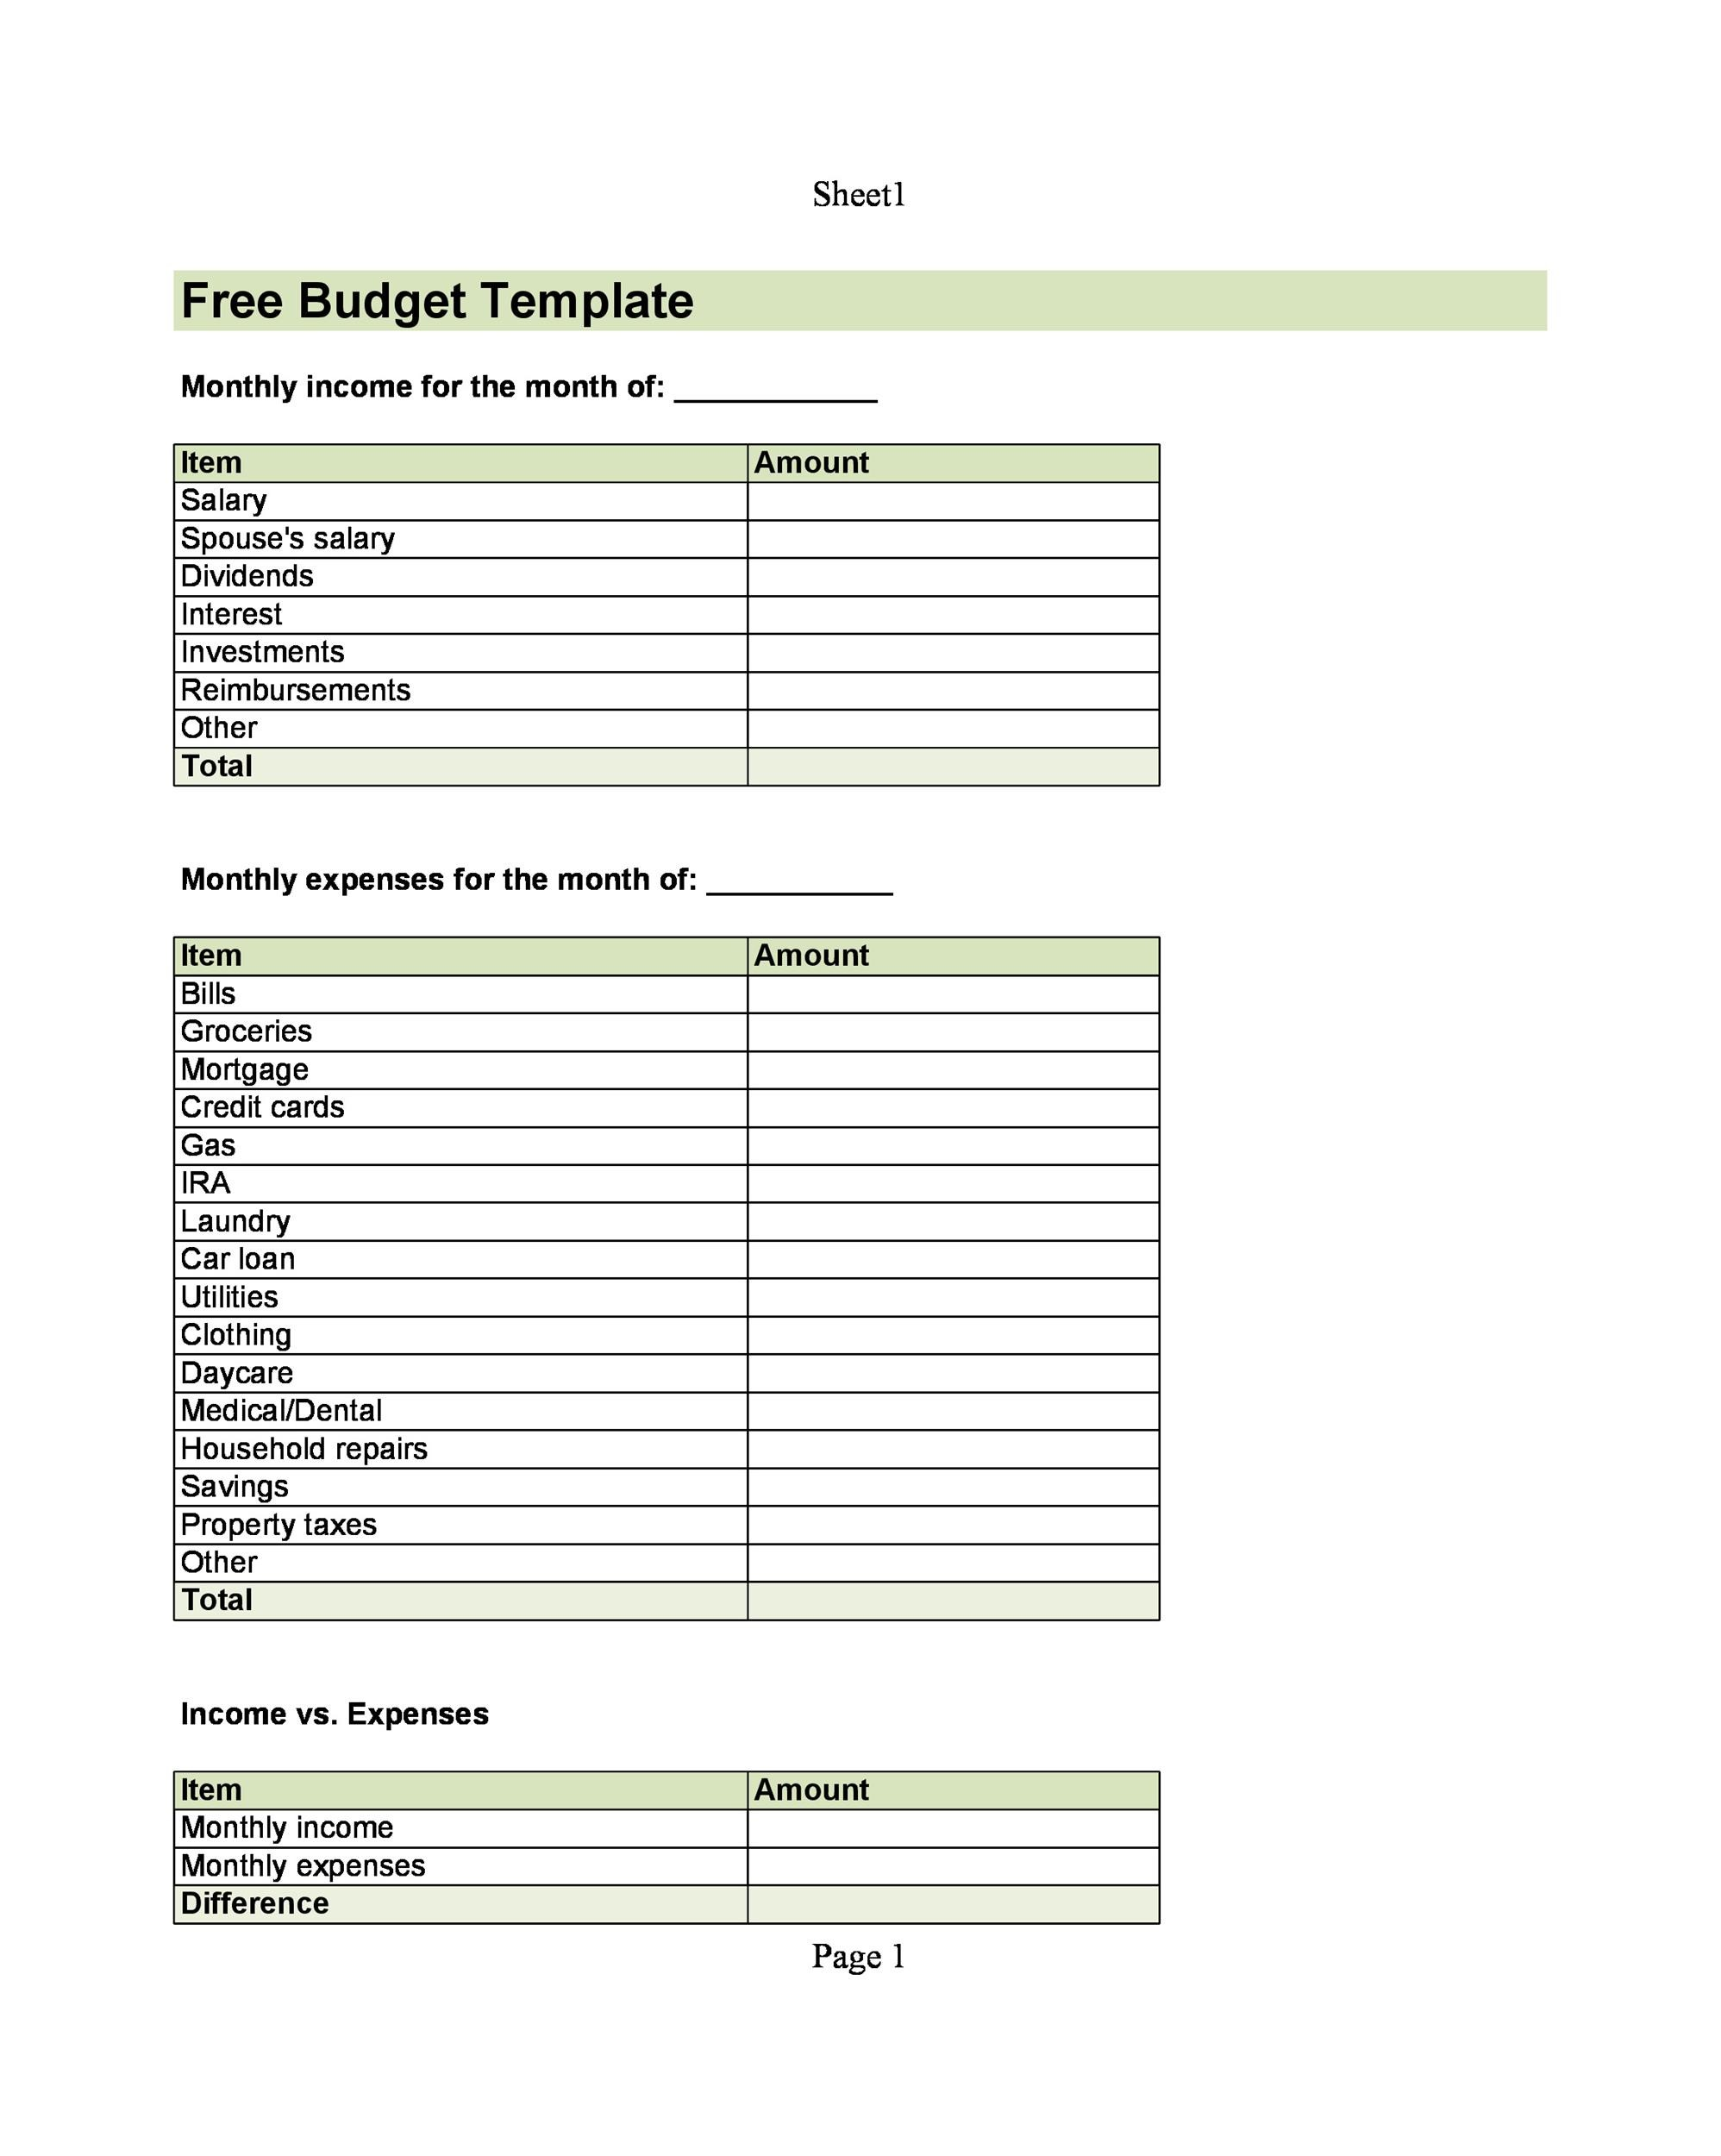 Budget Templates  Budget Worksheets Excel Pdf  Template Lab